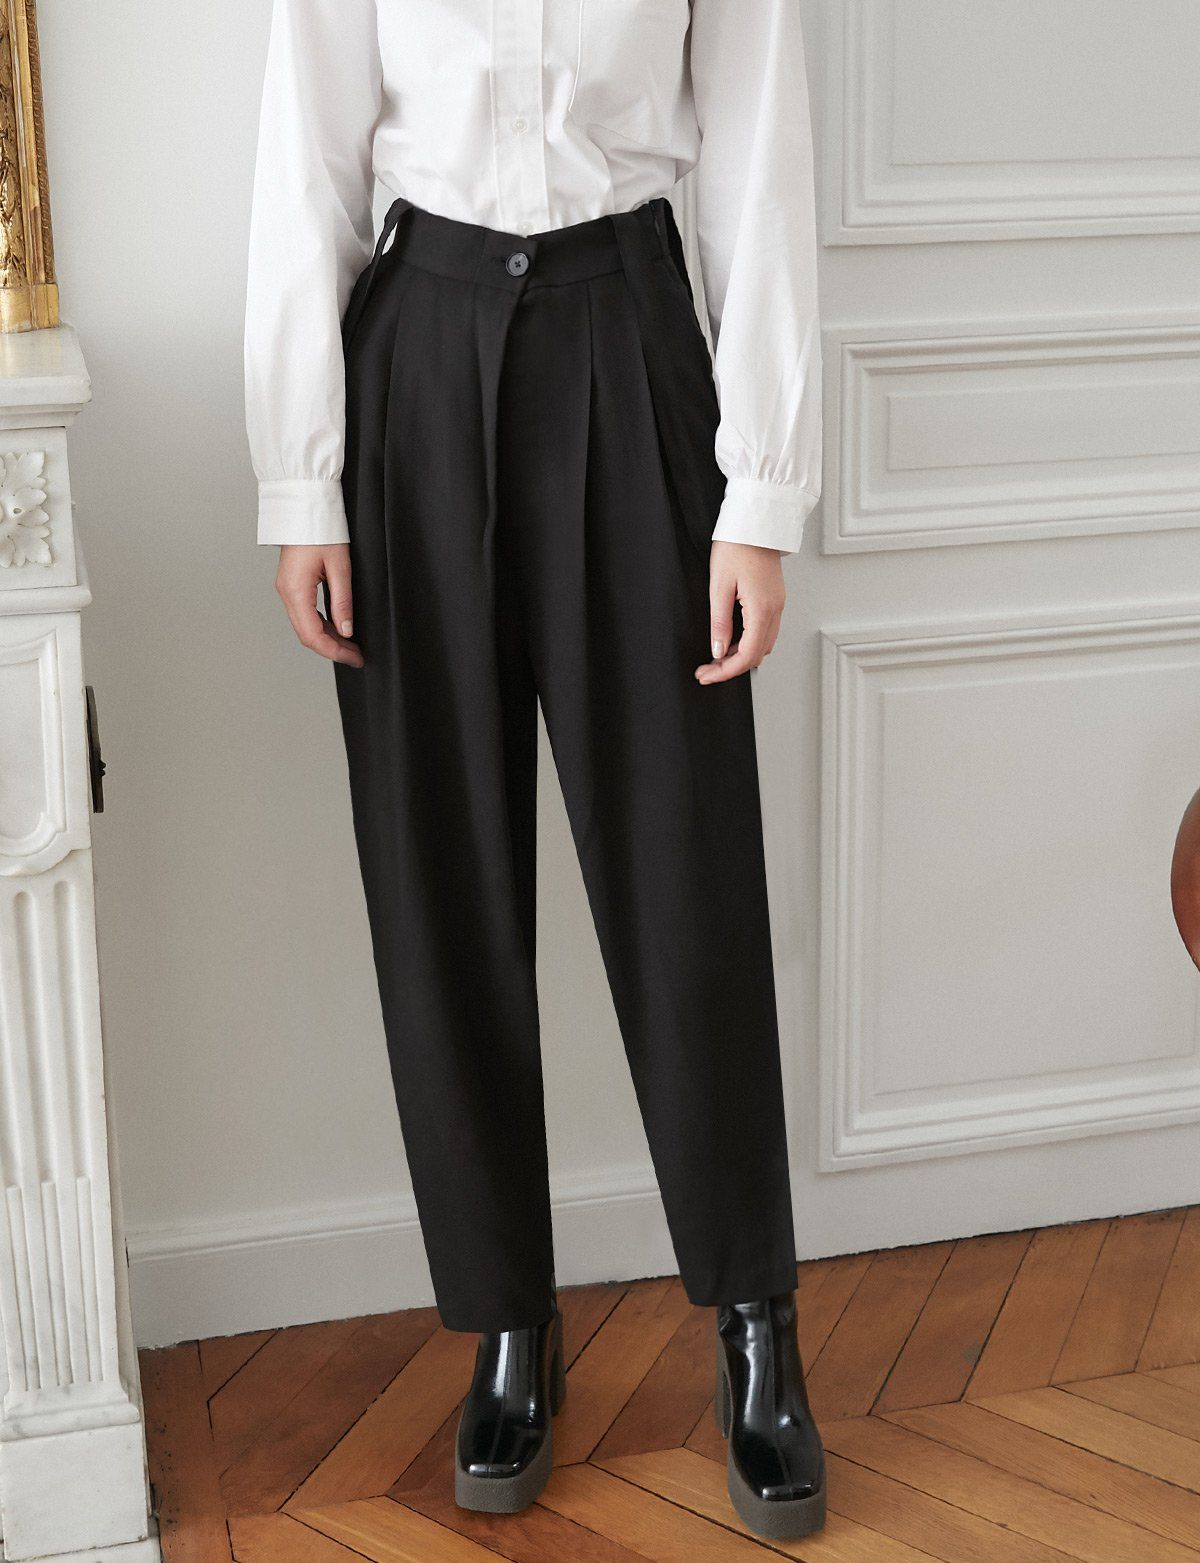 Tencel Black Suspender Pants In 2021 High Waisted Trousers Cozy Dress Outfit Fashion Pants [ 1563 x 1200 Pixel ]